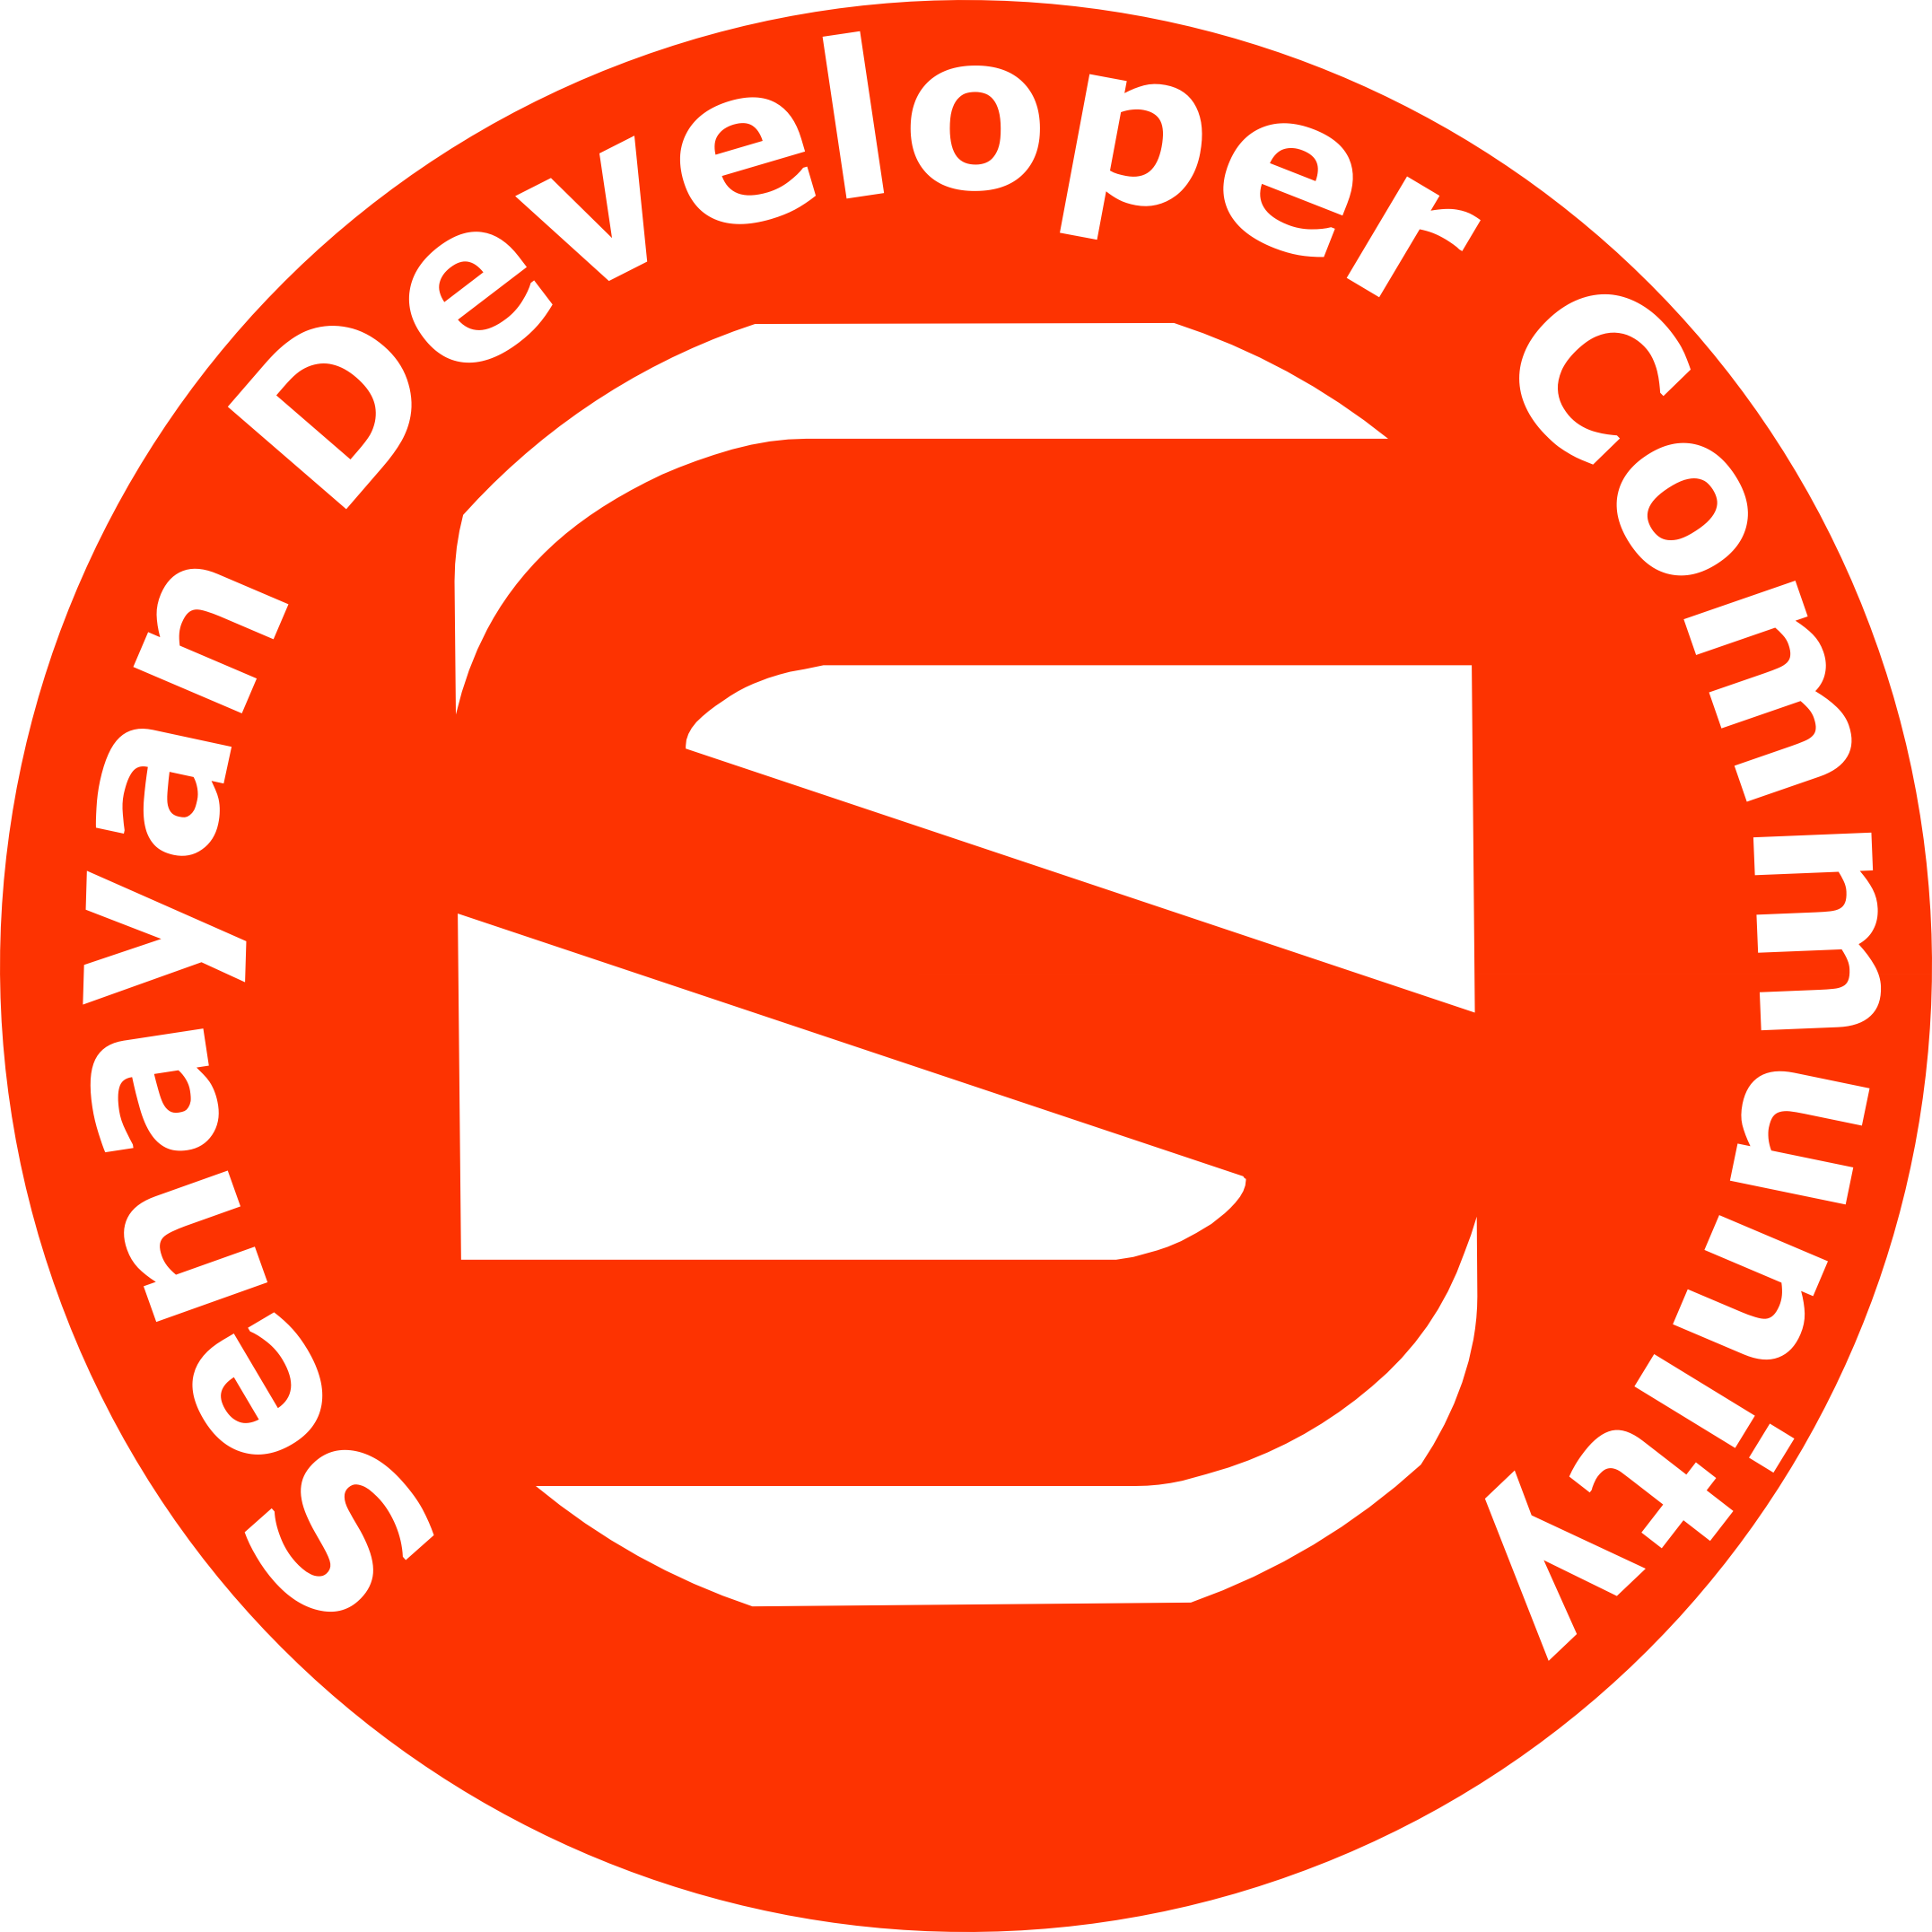 Senayan Developer Community